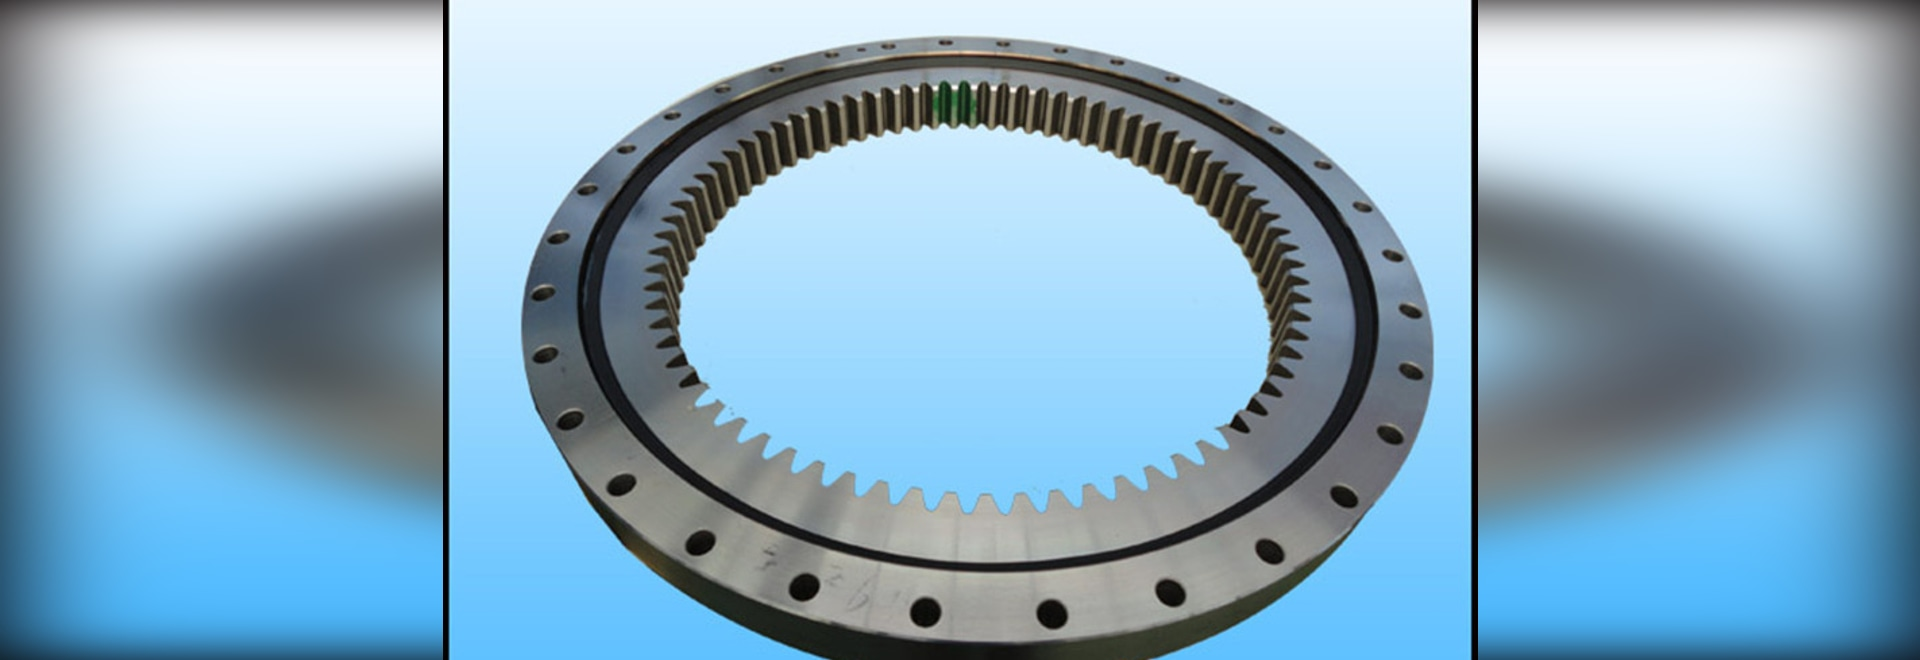 Rotate flexibly slewing bearing with internal gear which used in environmental machinery